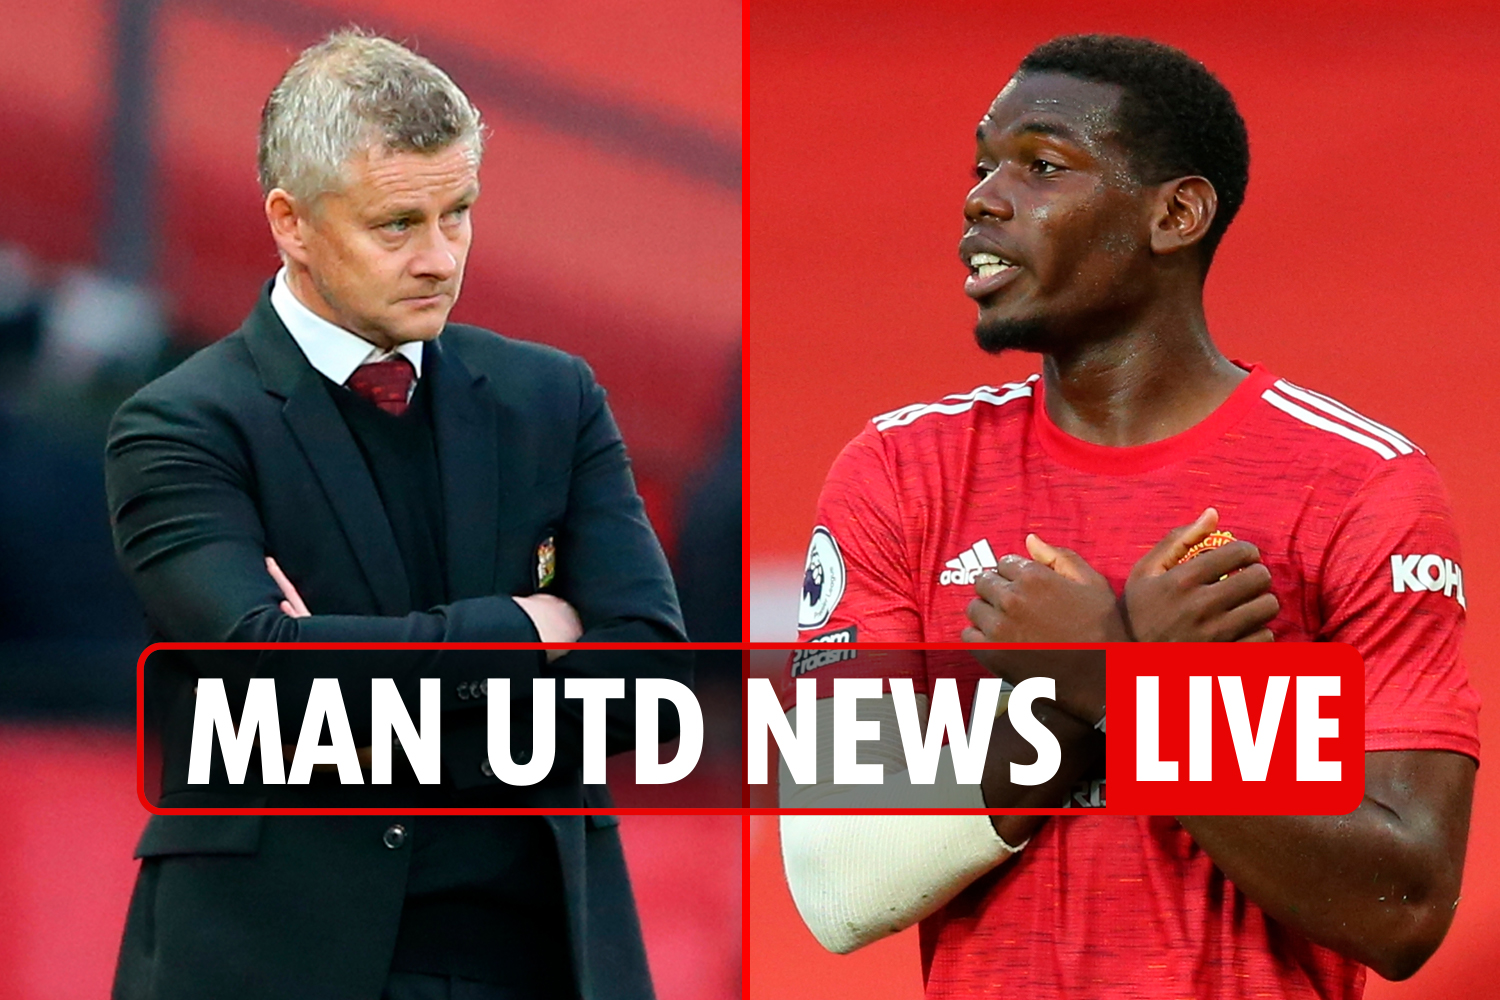 12pm Man Utd news LIVE: Bruno target for Real Madrid and Barca, Pogba contract EXTENDED, Maguire DOUBT for Newcastle